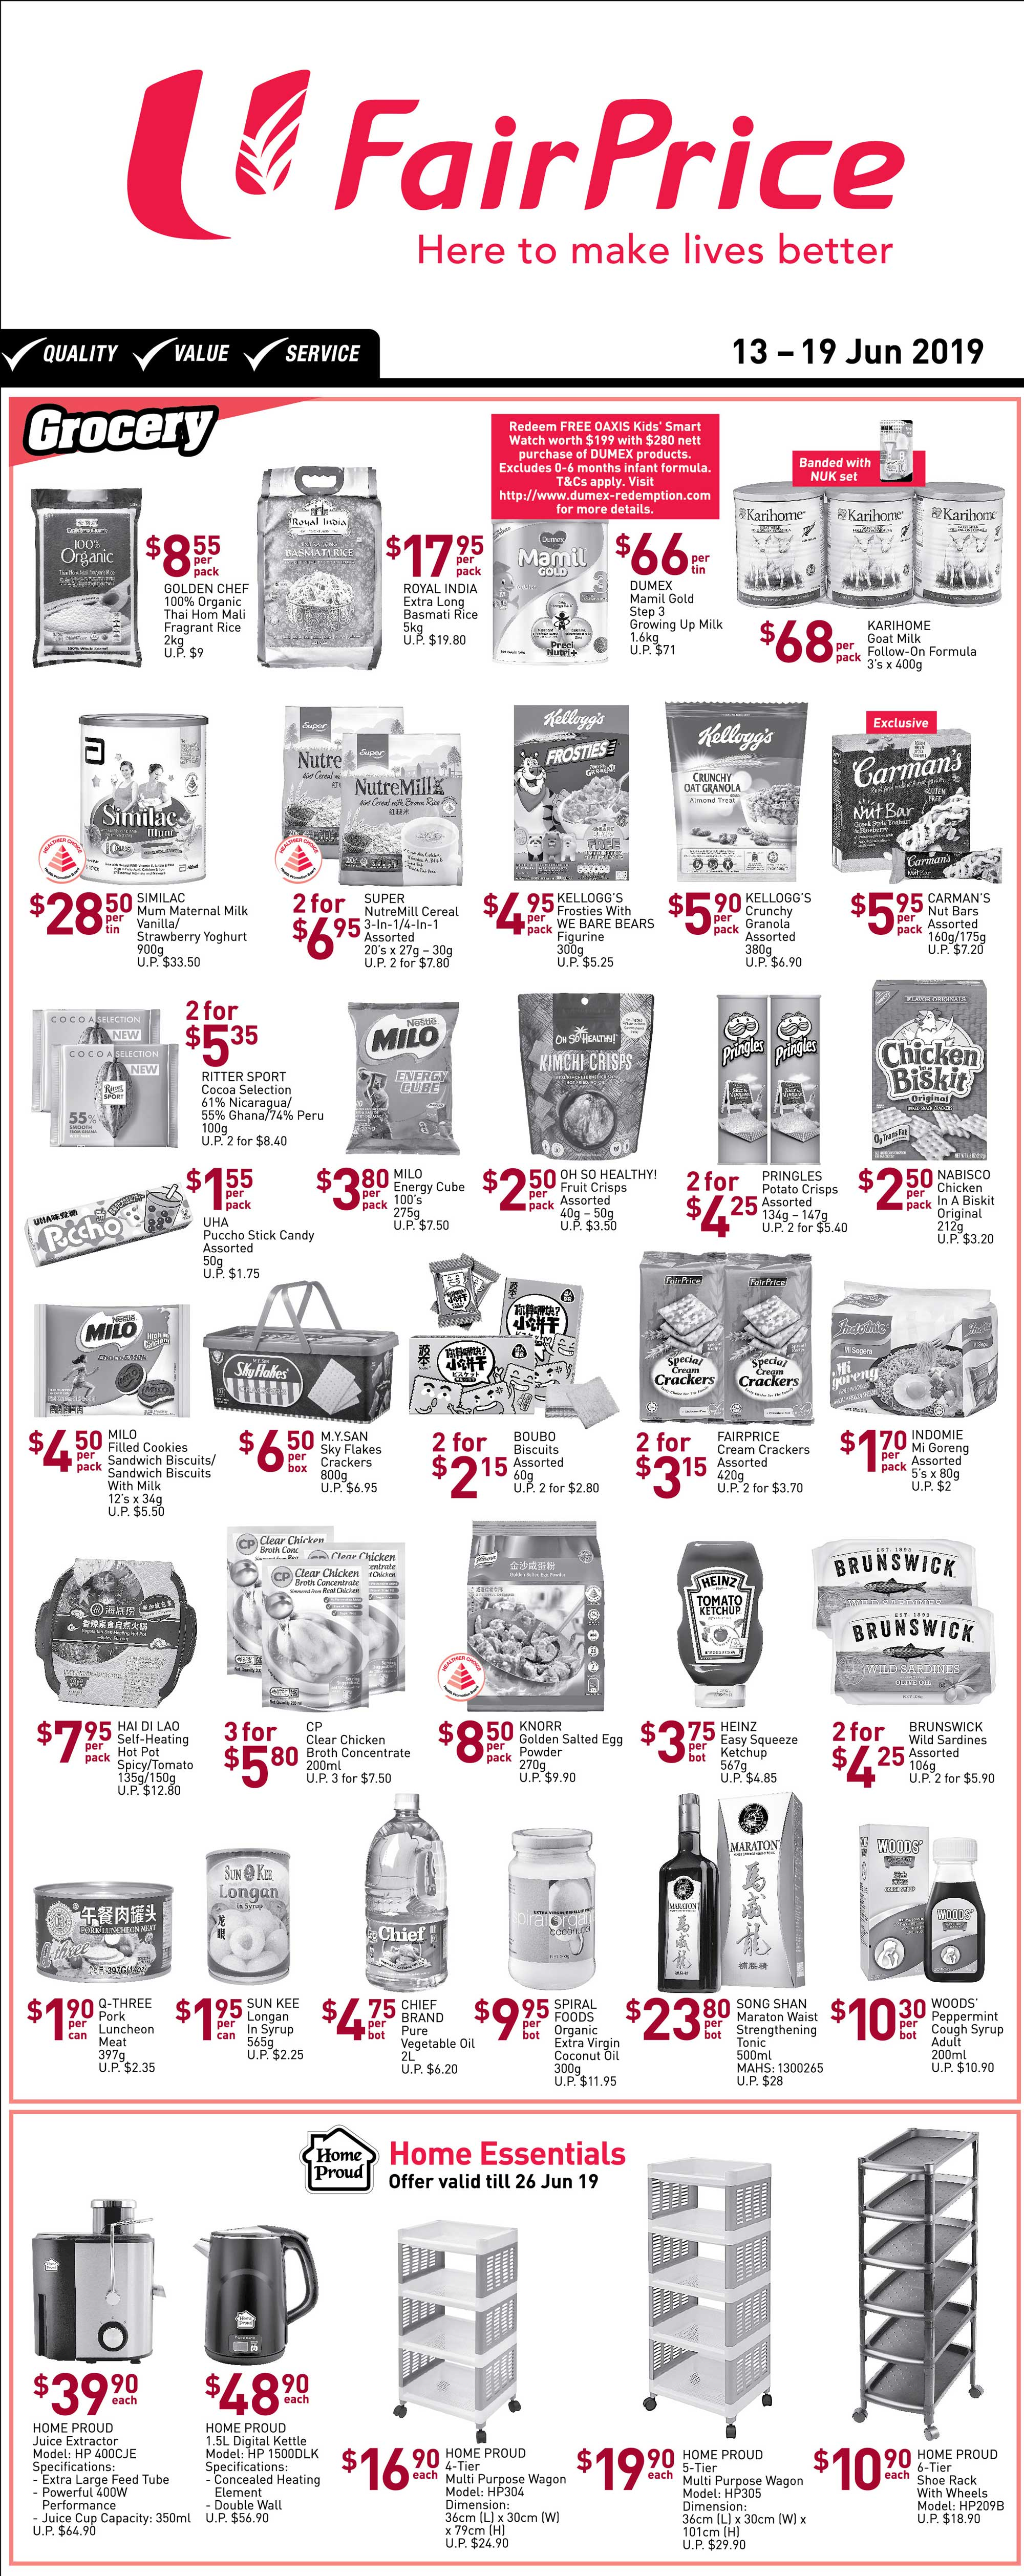 NTUC FairPrice Singapore Your Weekly Saver Promotion 13-19 Jun 2019 | Why Not Deals 2 & Promotions